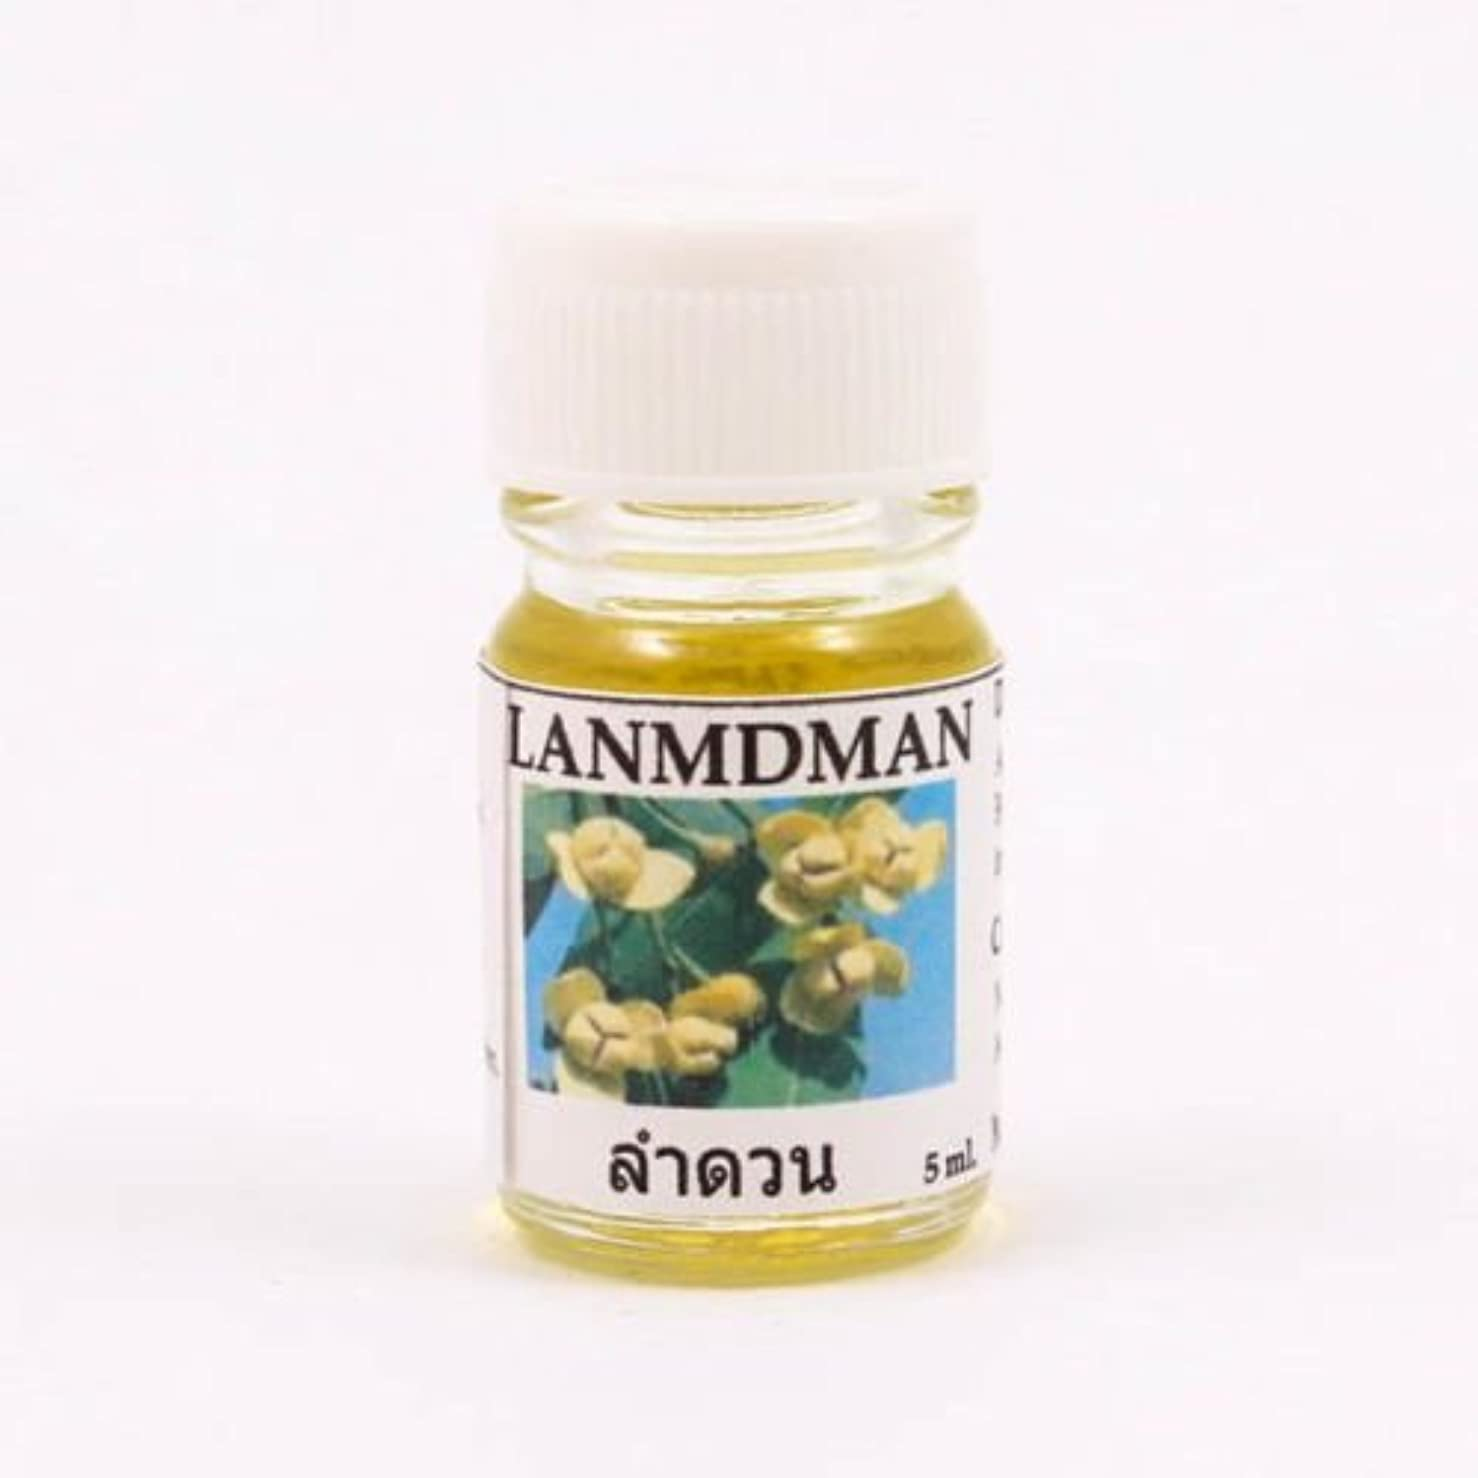 を必要としていますさておきハイライト6X Lanmdman Aroma Fragrance Essential Oil 5ML. cc Diffuser Burner Therapy